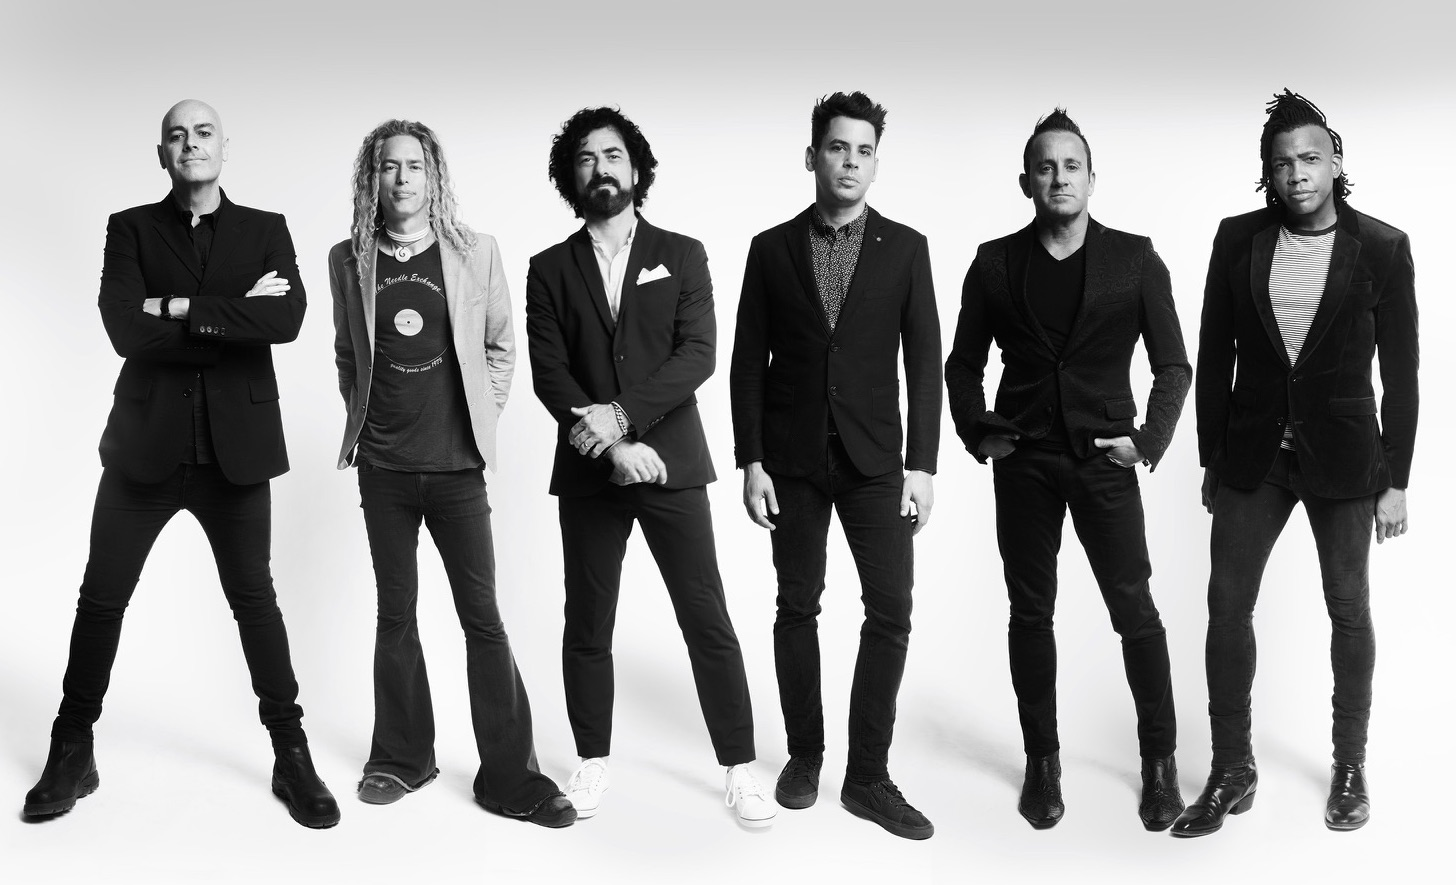 NEWSBOYS UNITED REVEAL 'GREATNESS OF OUR GOD' WITH HISTORY-MAKING DEBUT SINGLE